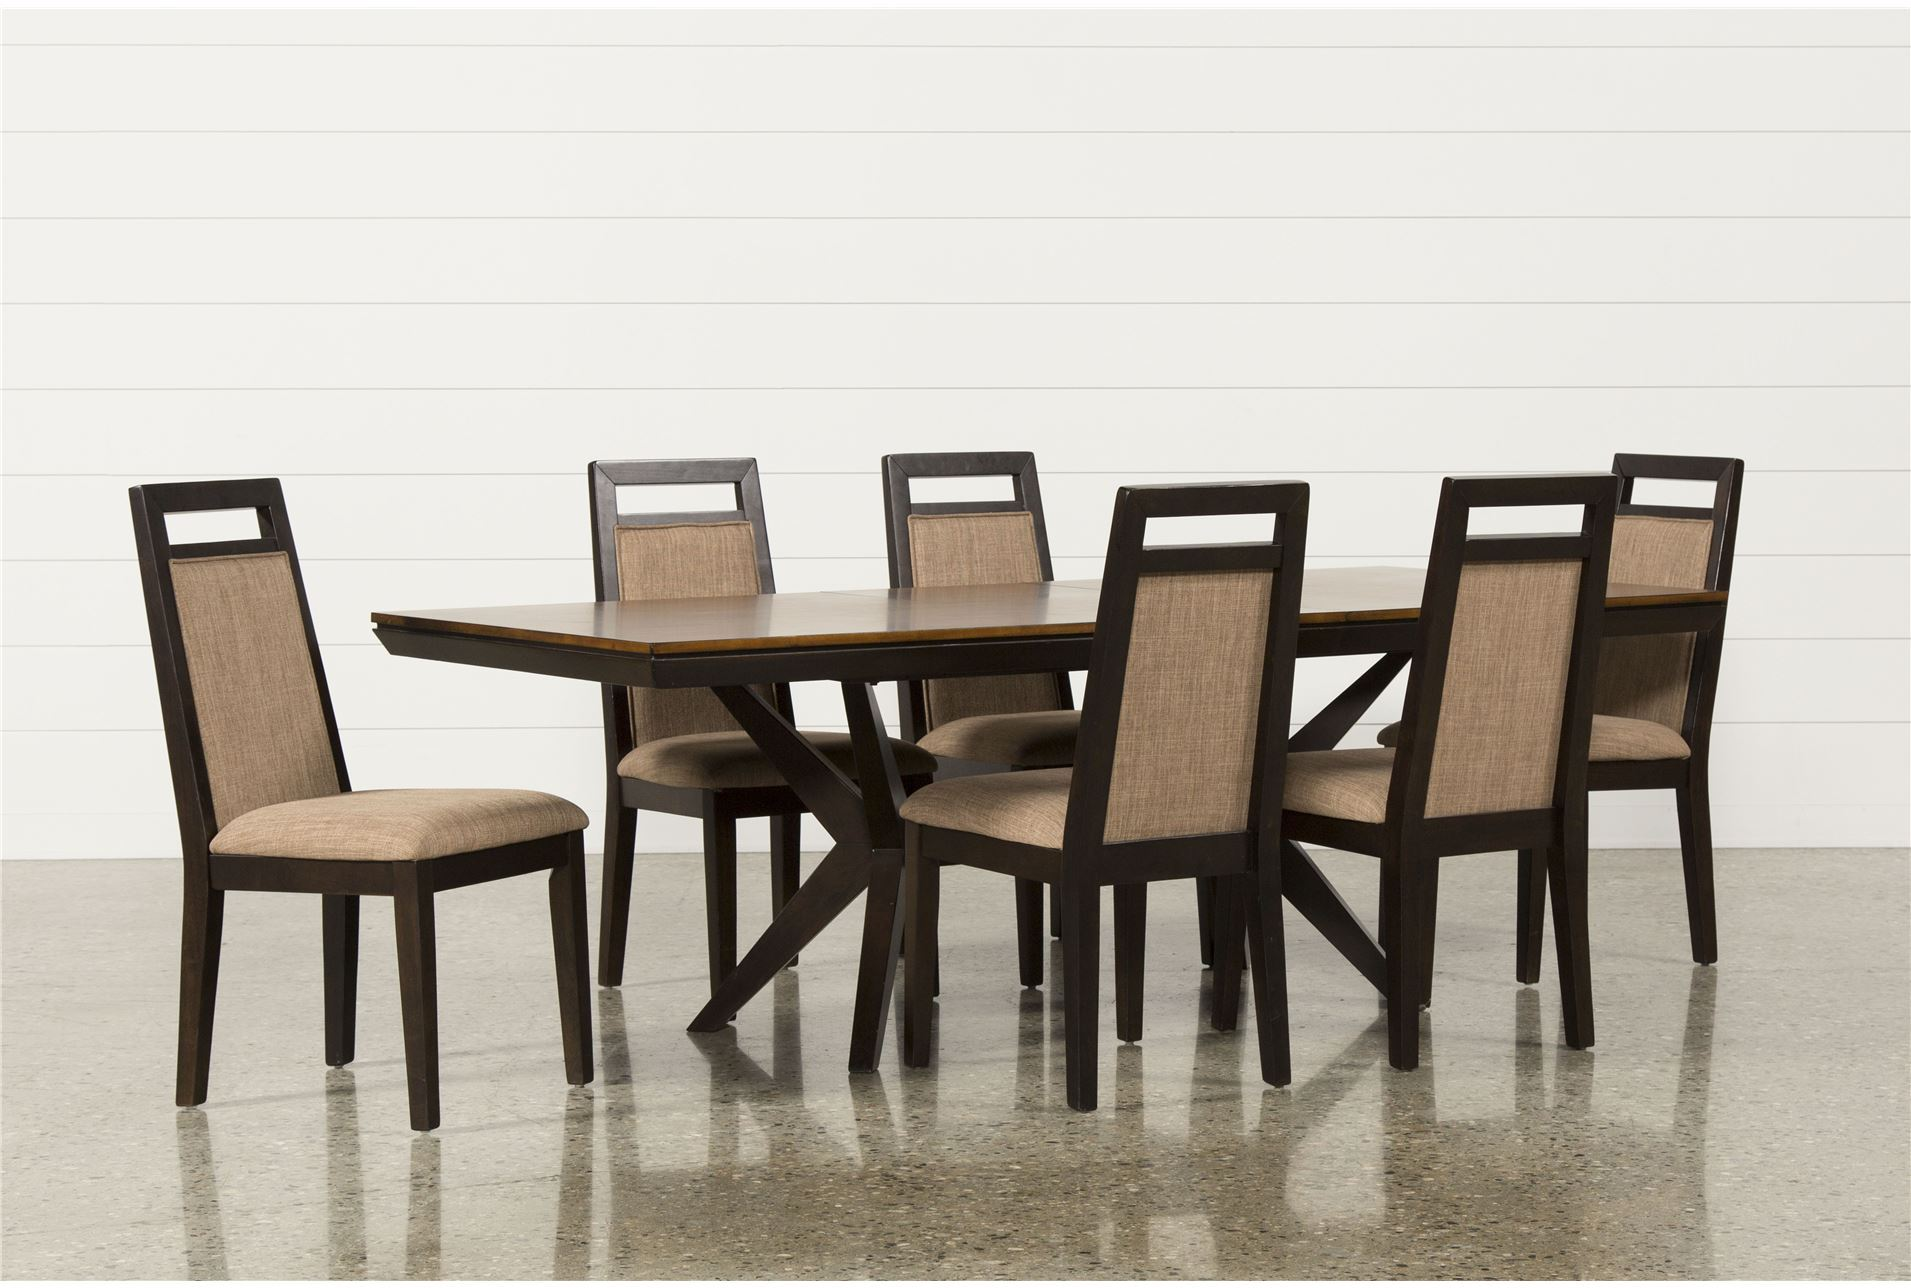 Names Of Dining Room Furniture Pieces 1000 Images About Furniture Styles On Pinterest Furniture Queen